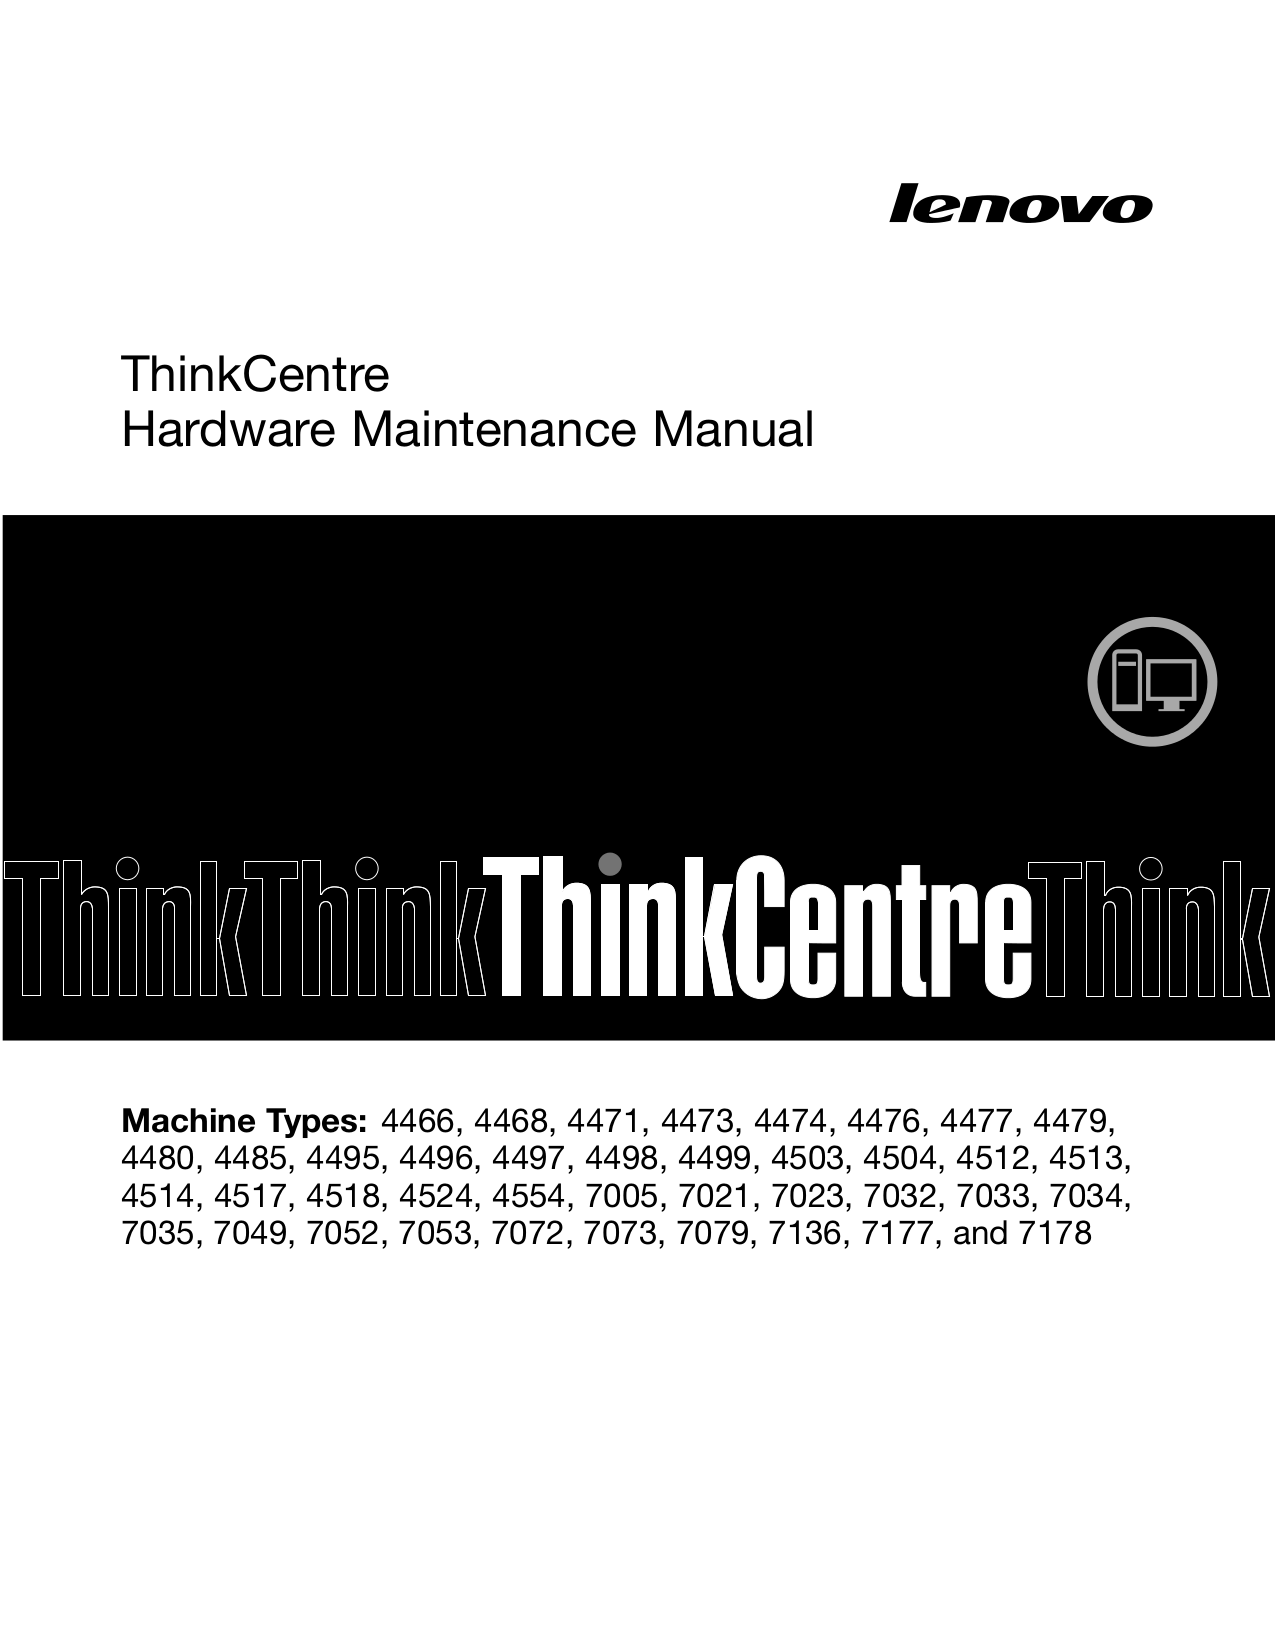 pdf for Lenovo Desktop ThinkCentre M91p 7033 manual